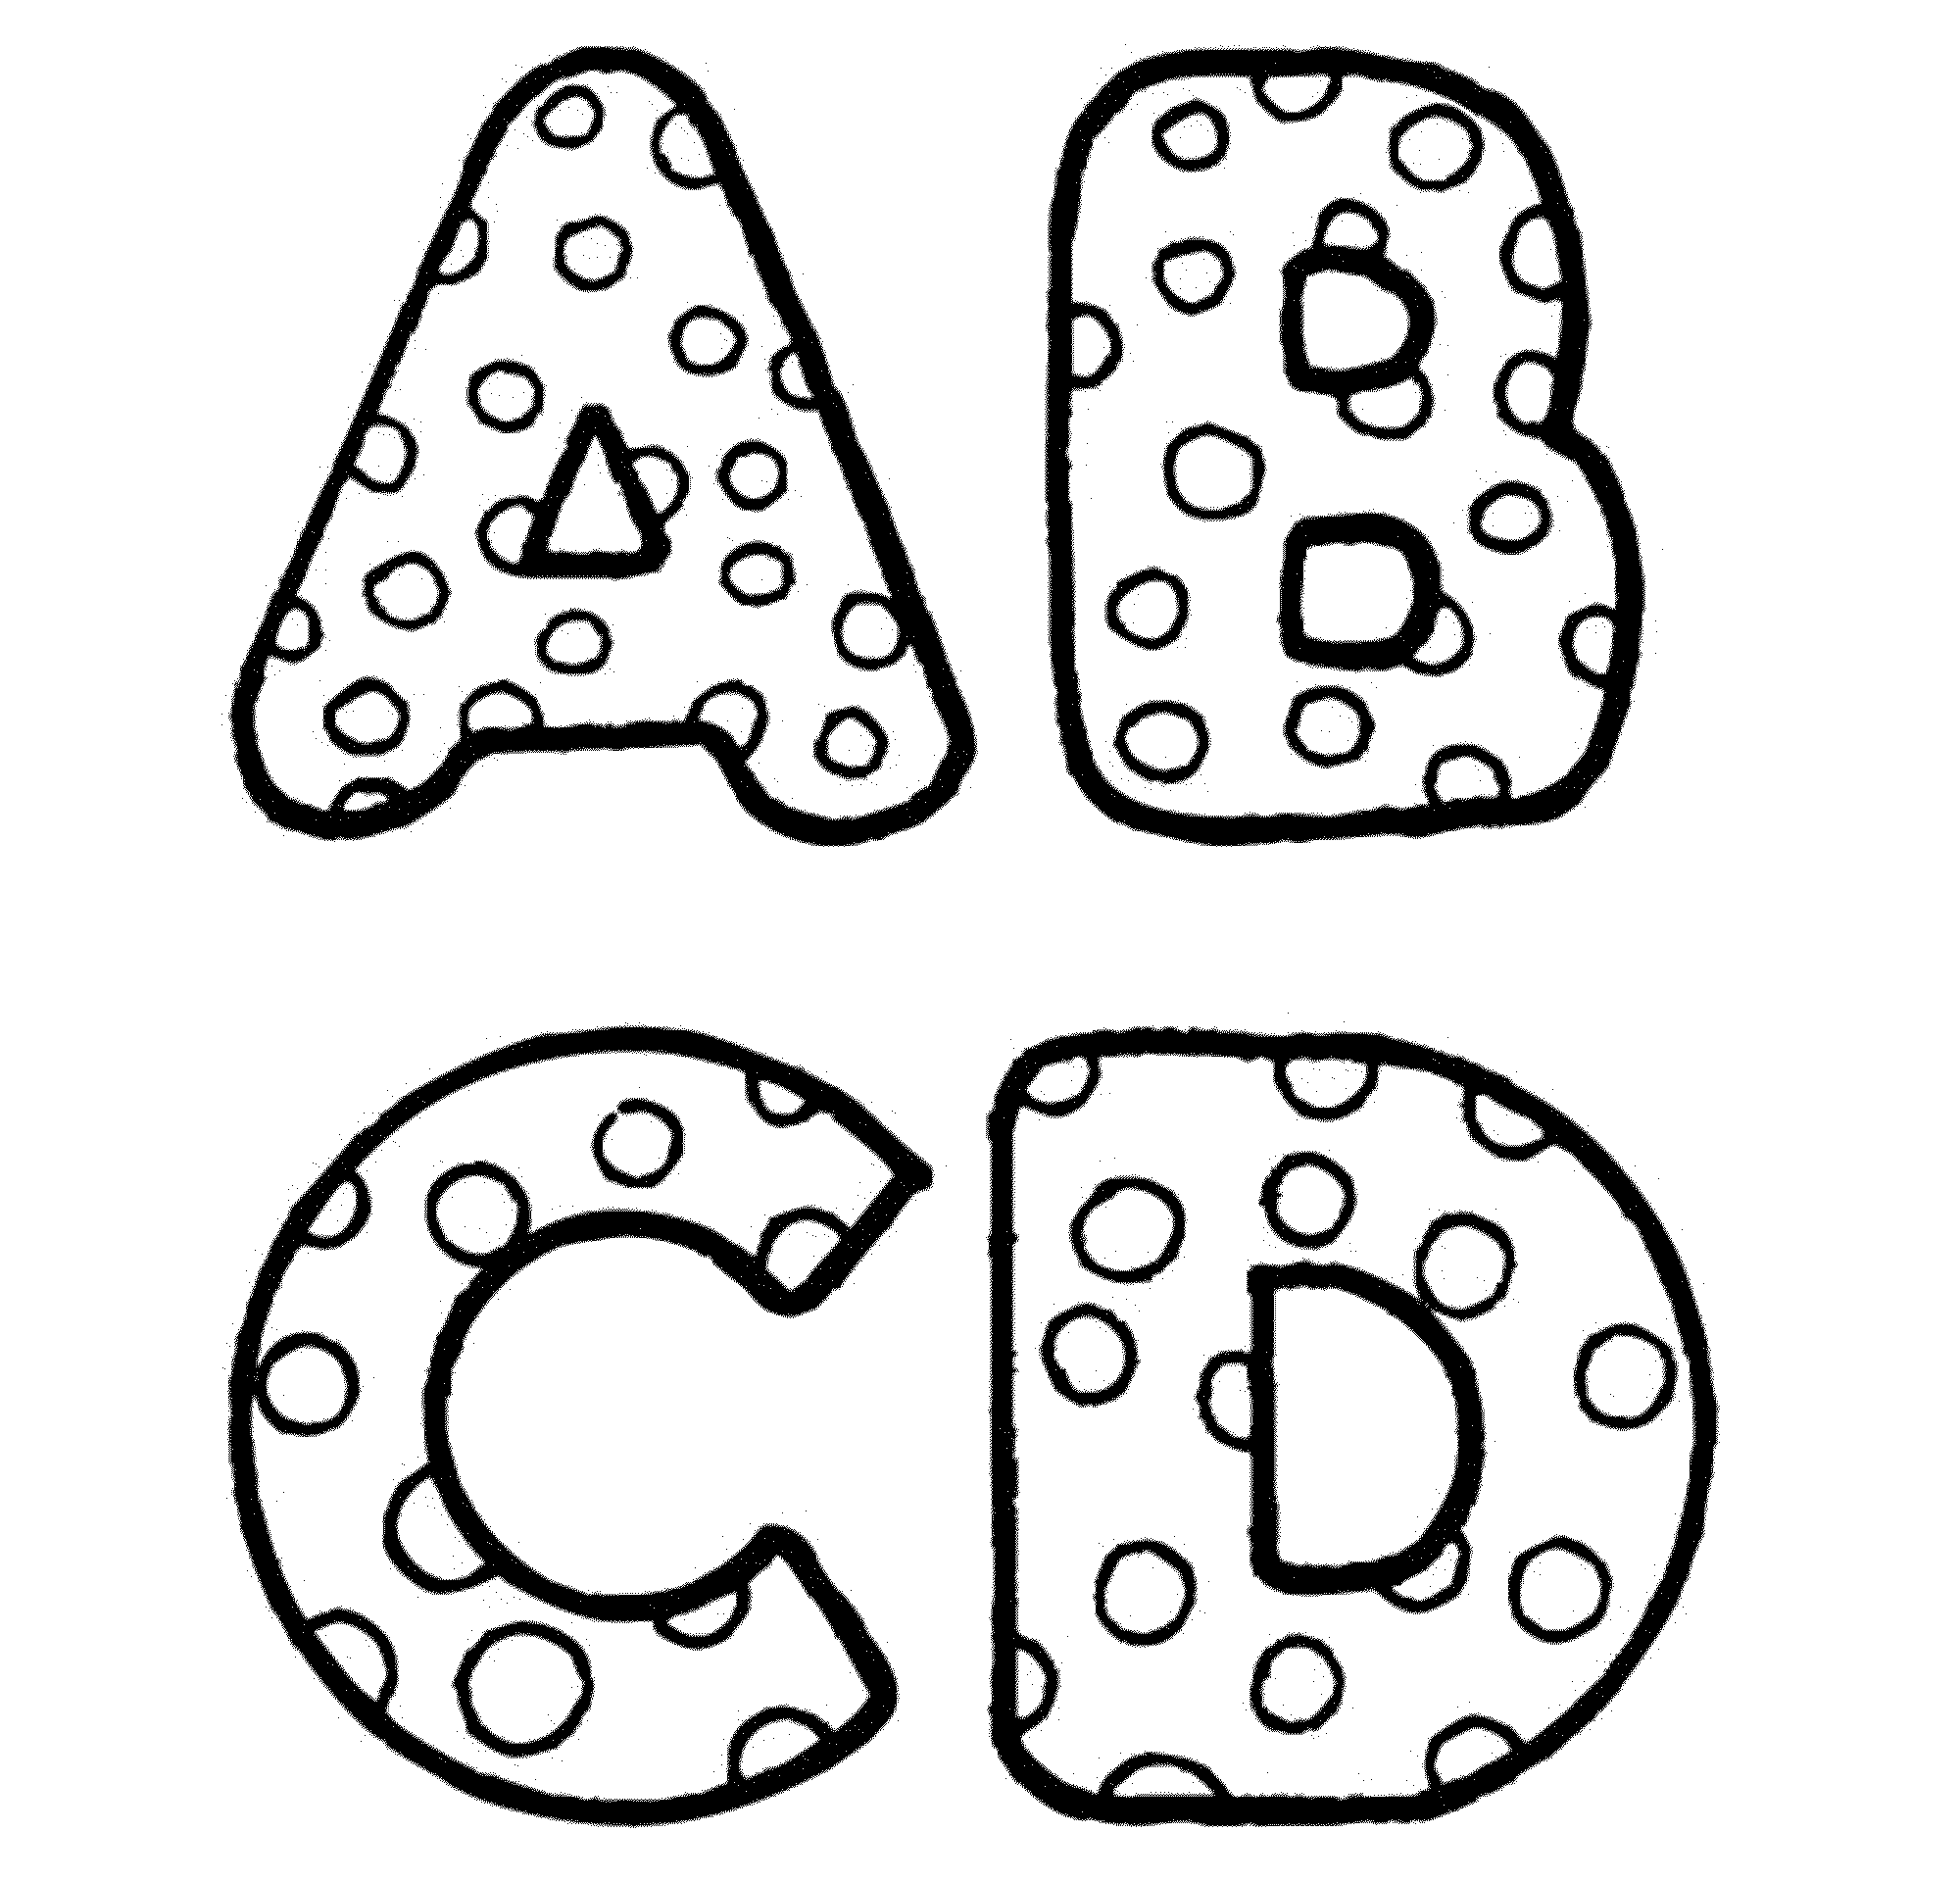 2000x1920 Abc Coloring Pages